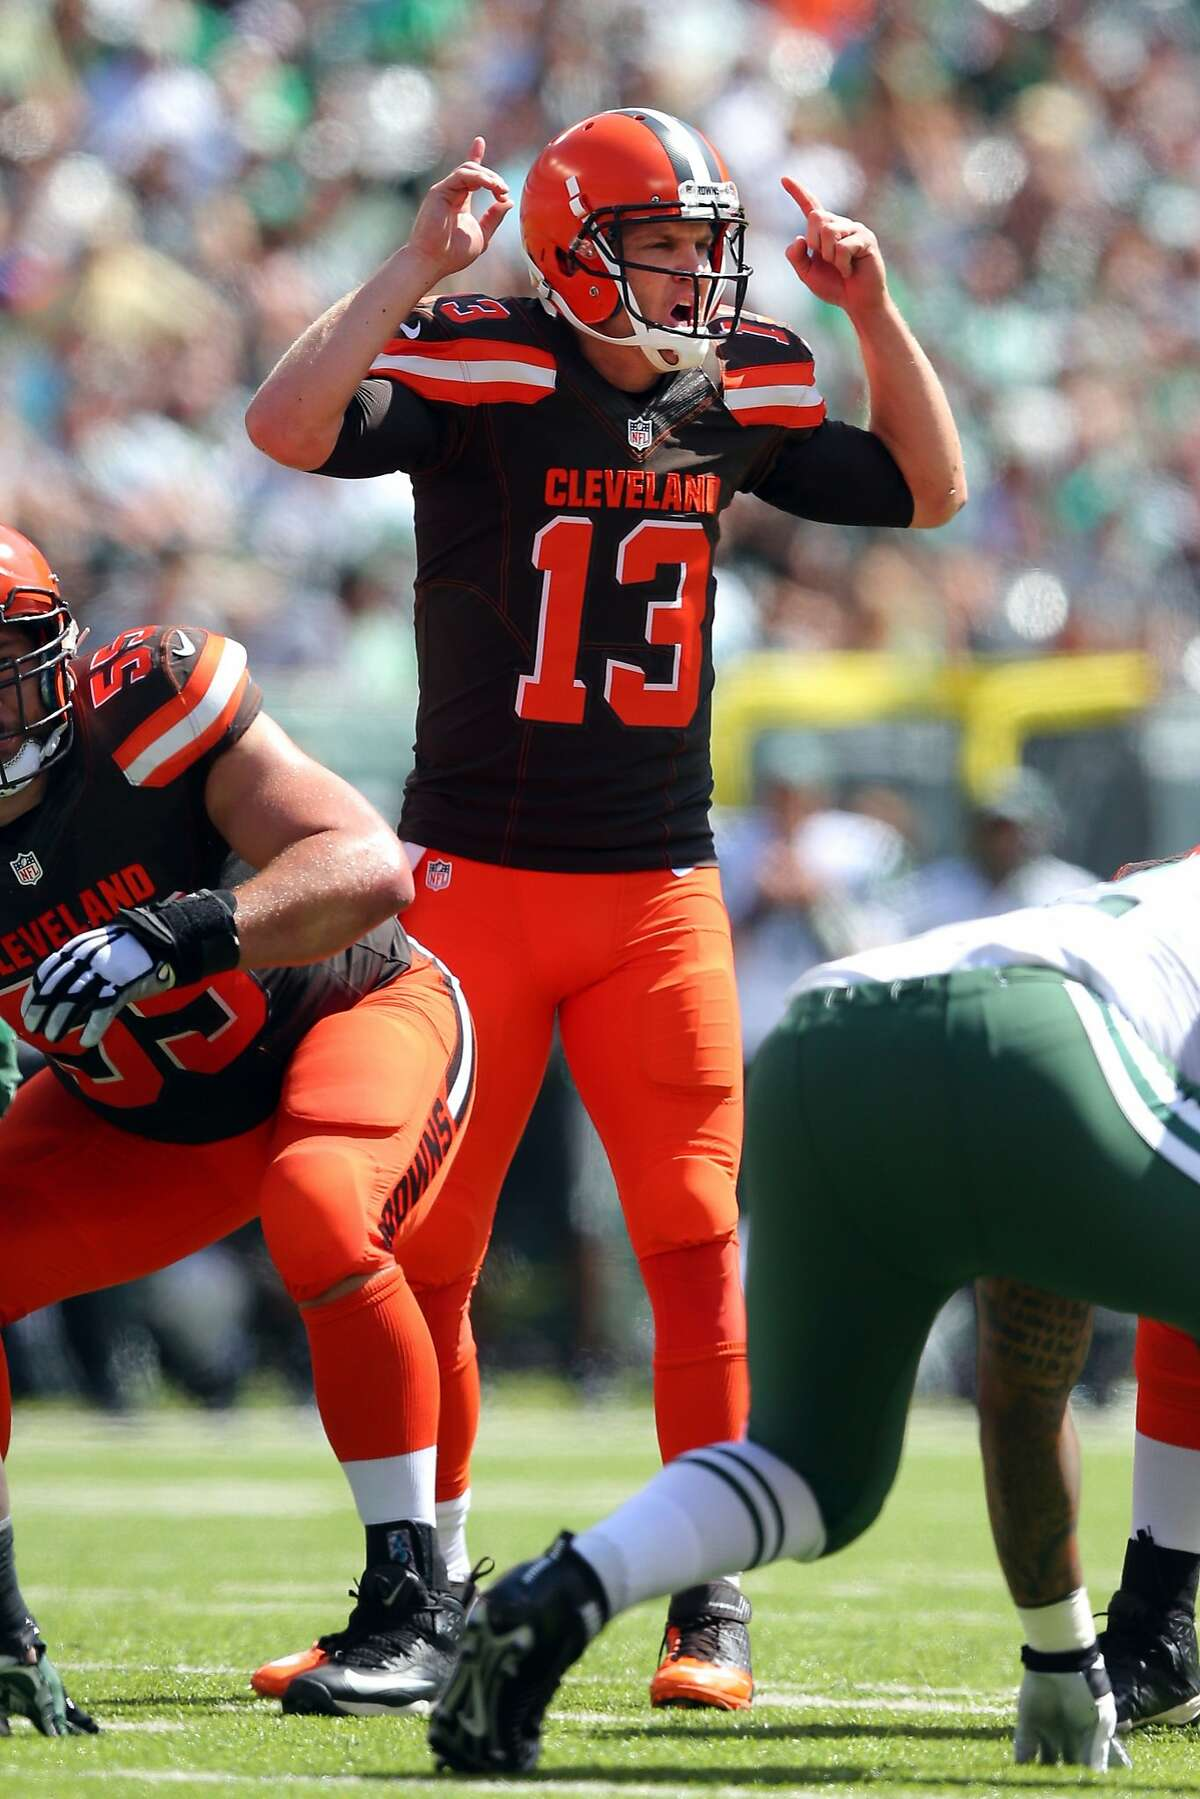 Cleveland Browns quarterback Josh McCown #13 calls plays at the line of scrimmage during an NFL game against the New York Jets at MetLife Stadium in East Rutherford, N.J. on Sunday, Sept. 13, 2015. (AP Photo/Brad Penner)